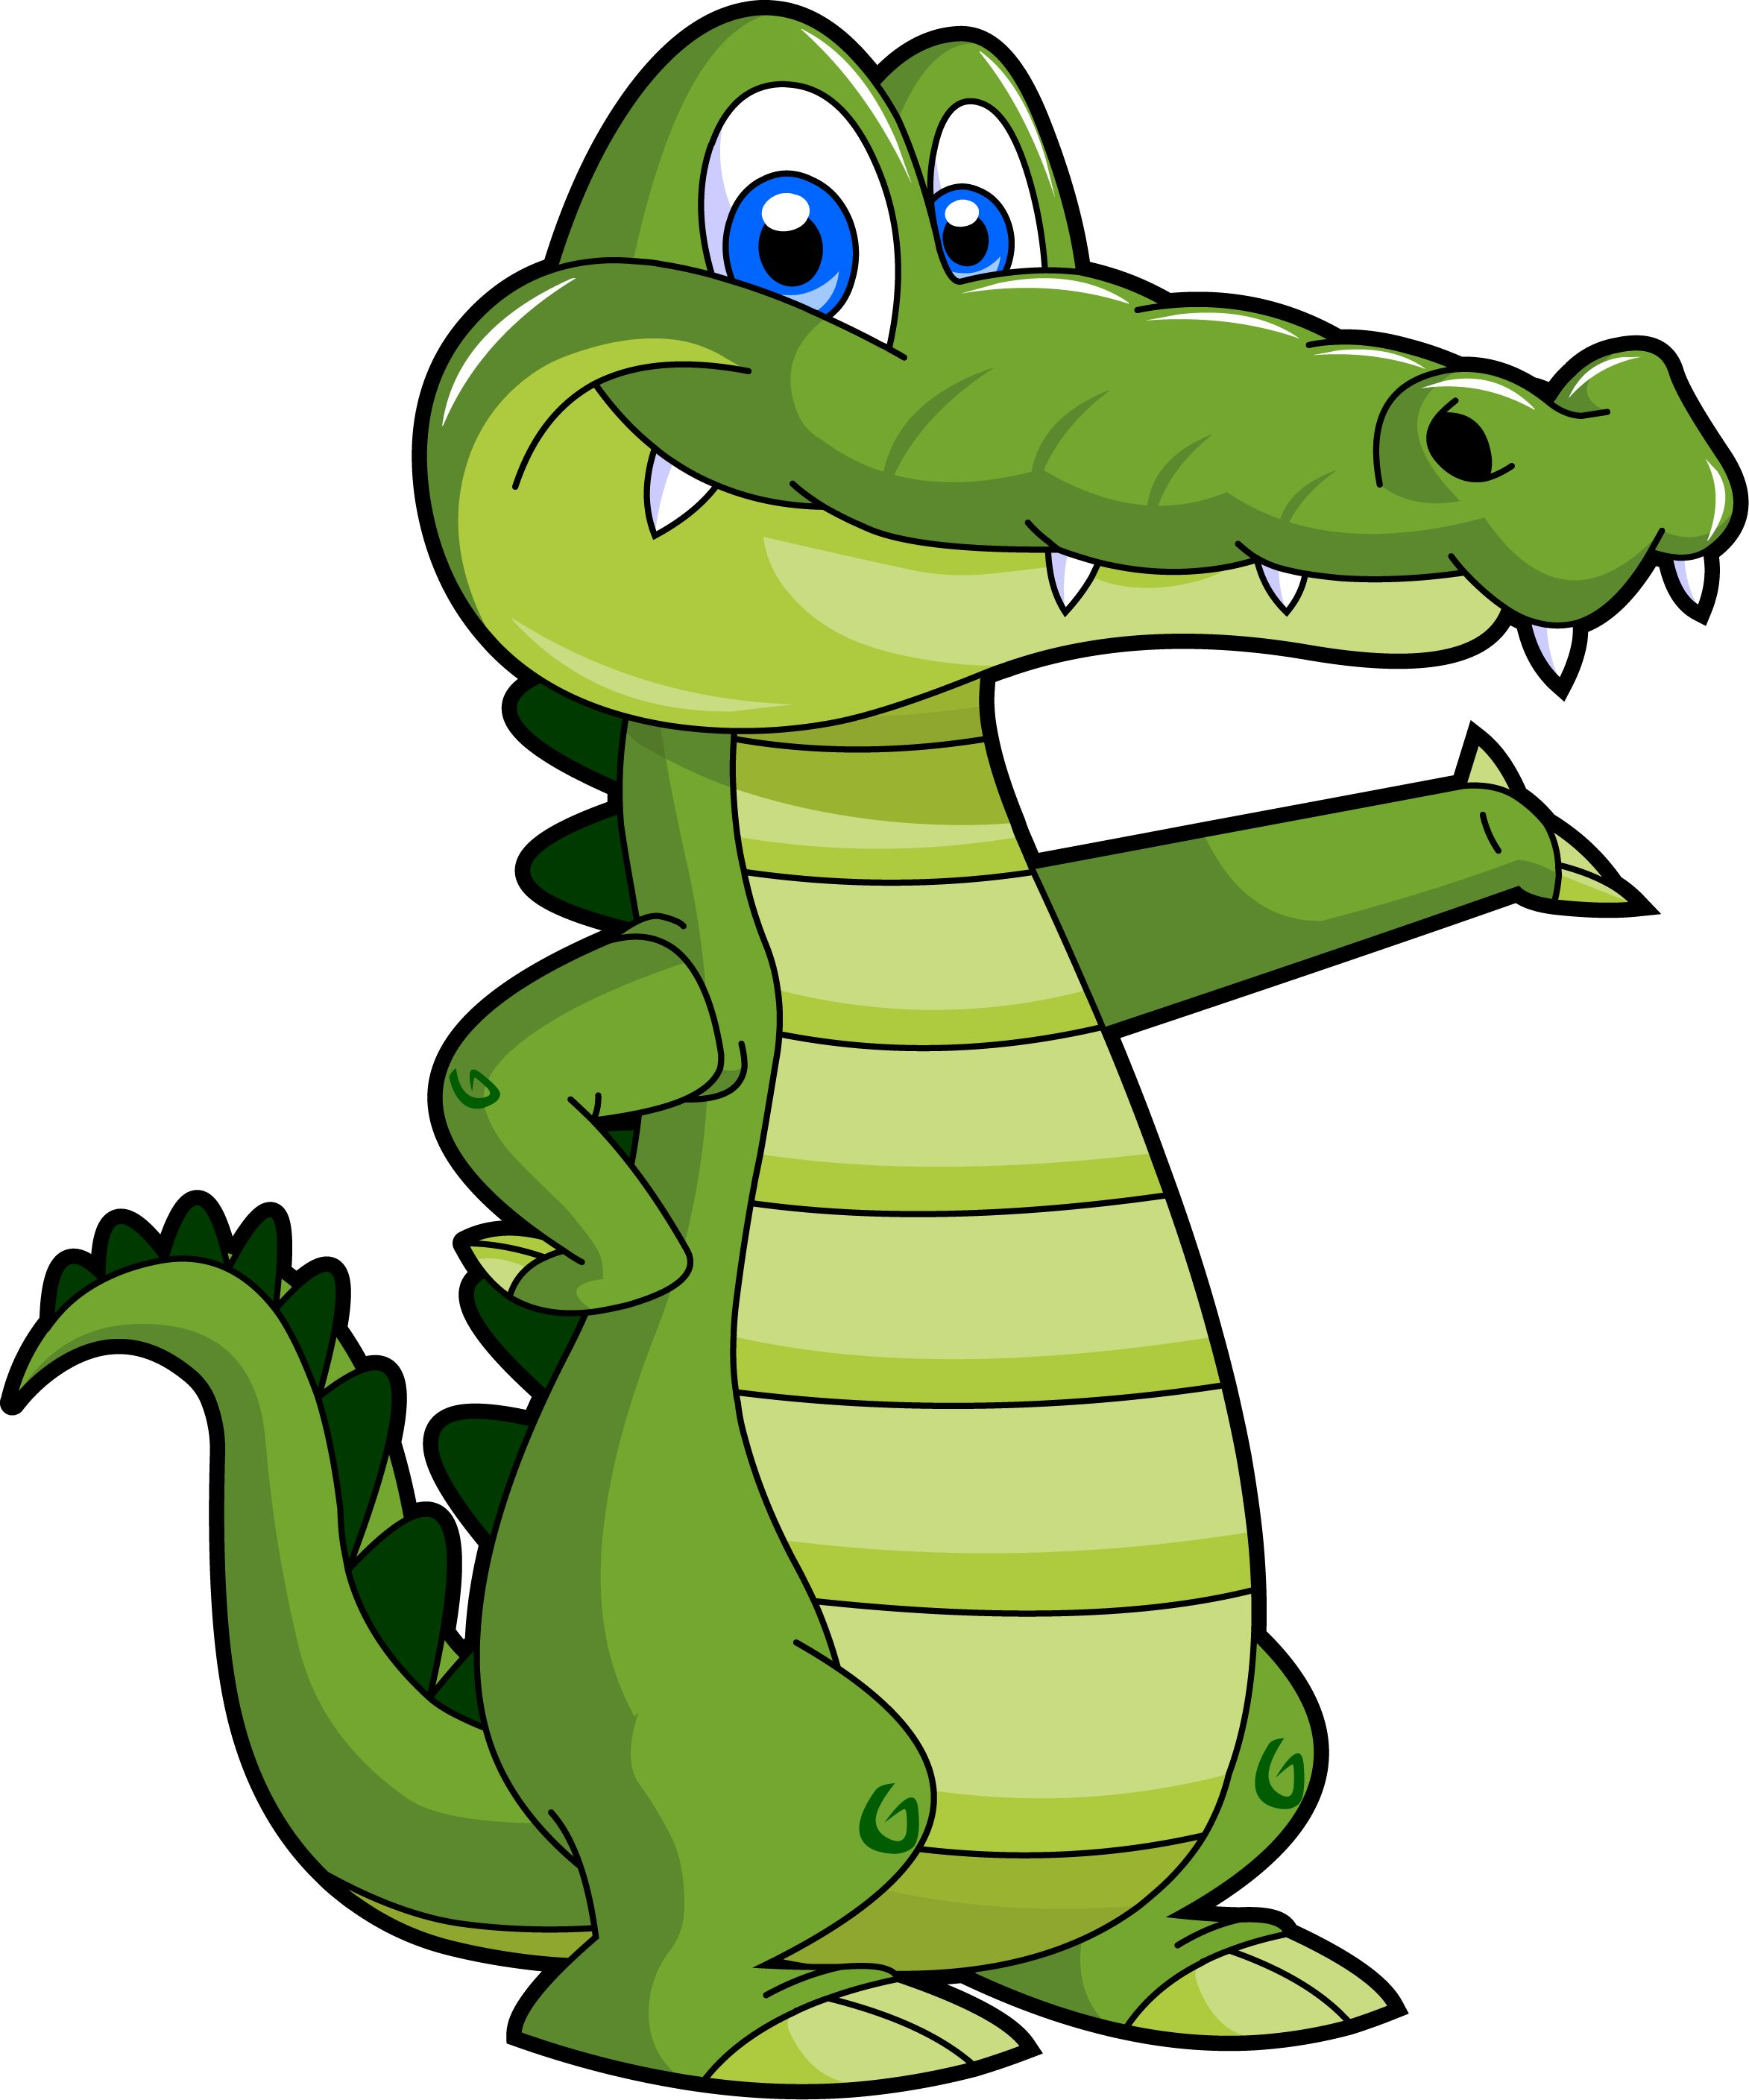 Crocodile clipart #4, Download drawings